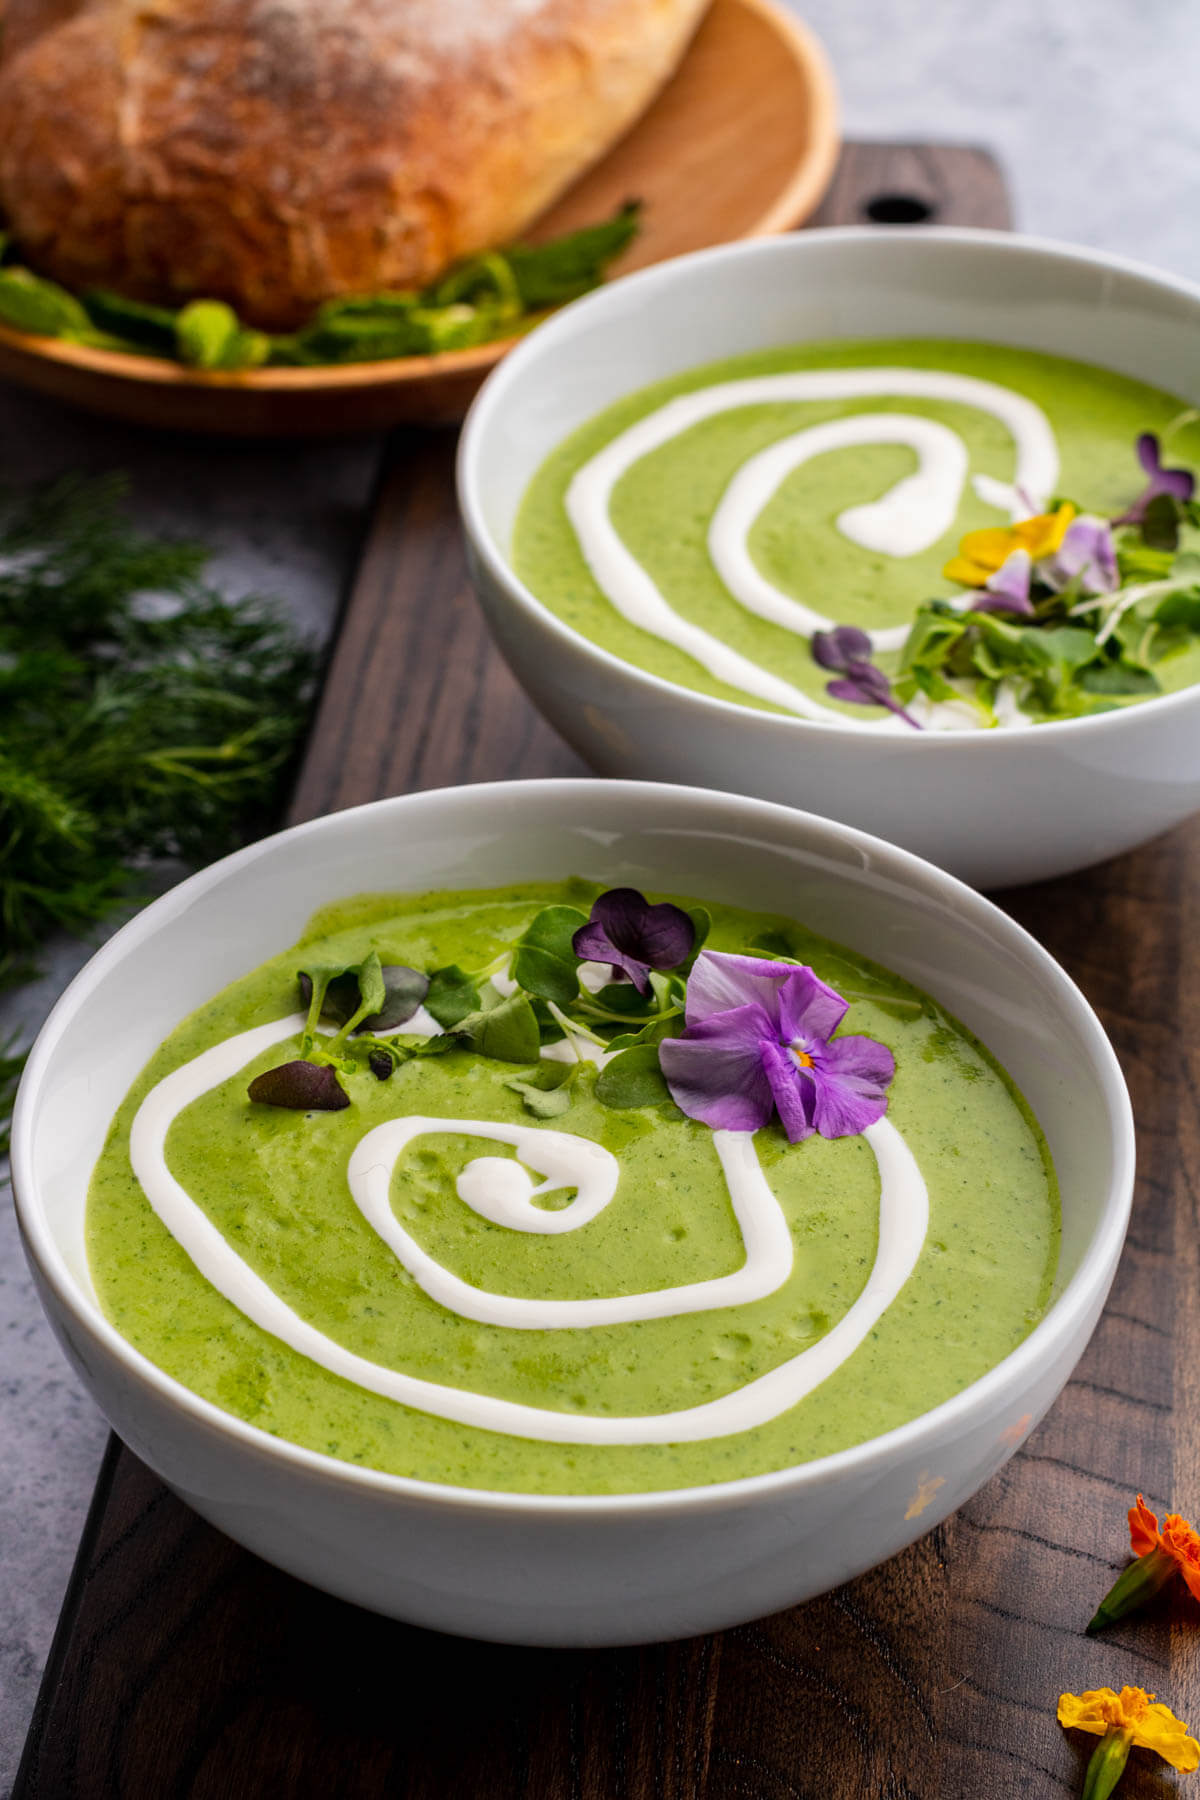 Two bowls of bright green nettle soup with swirls of white cream and microgreen edible flower garnish.